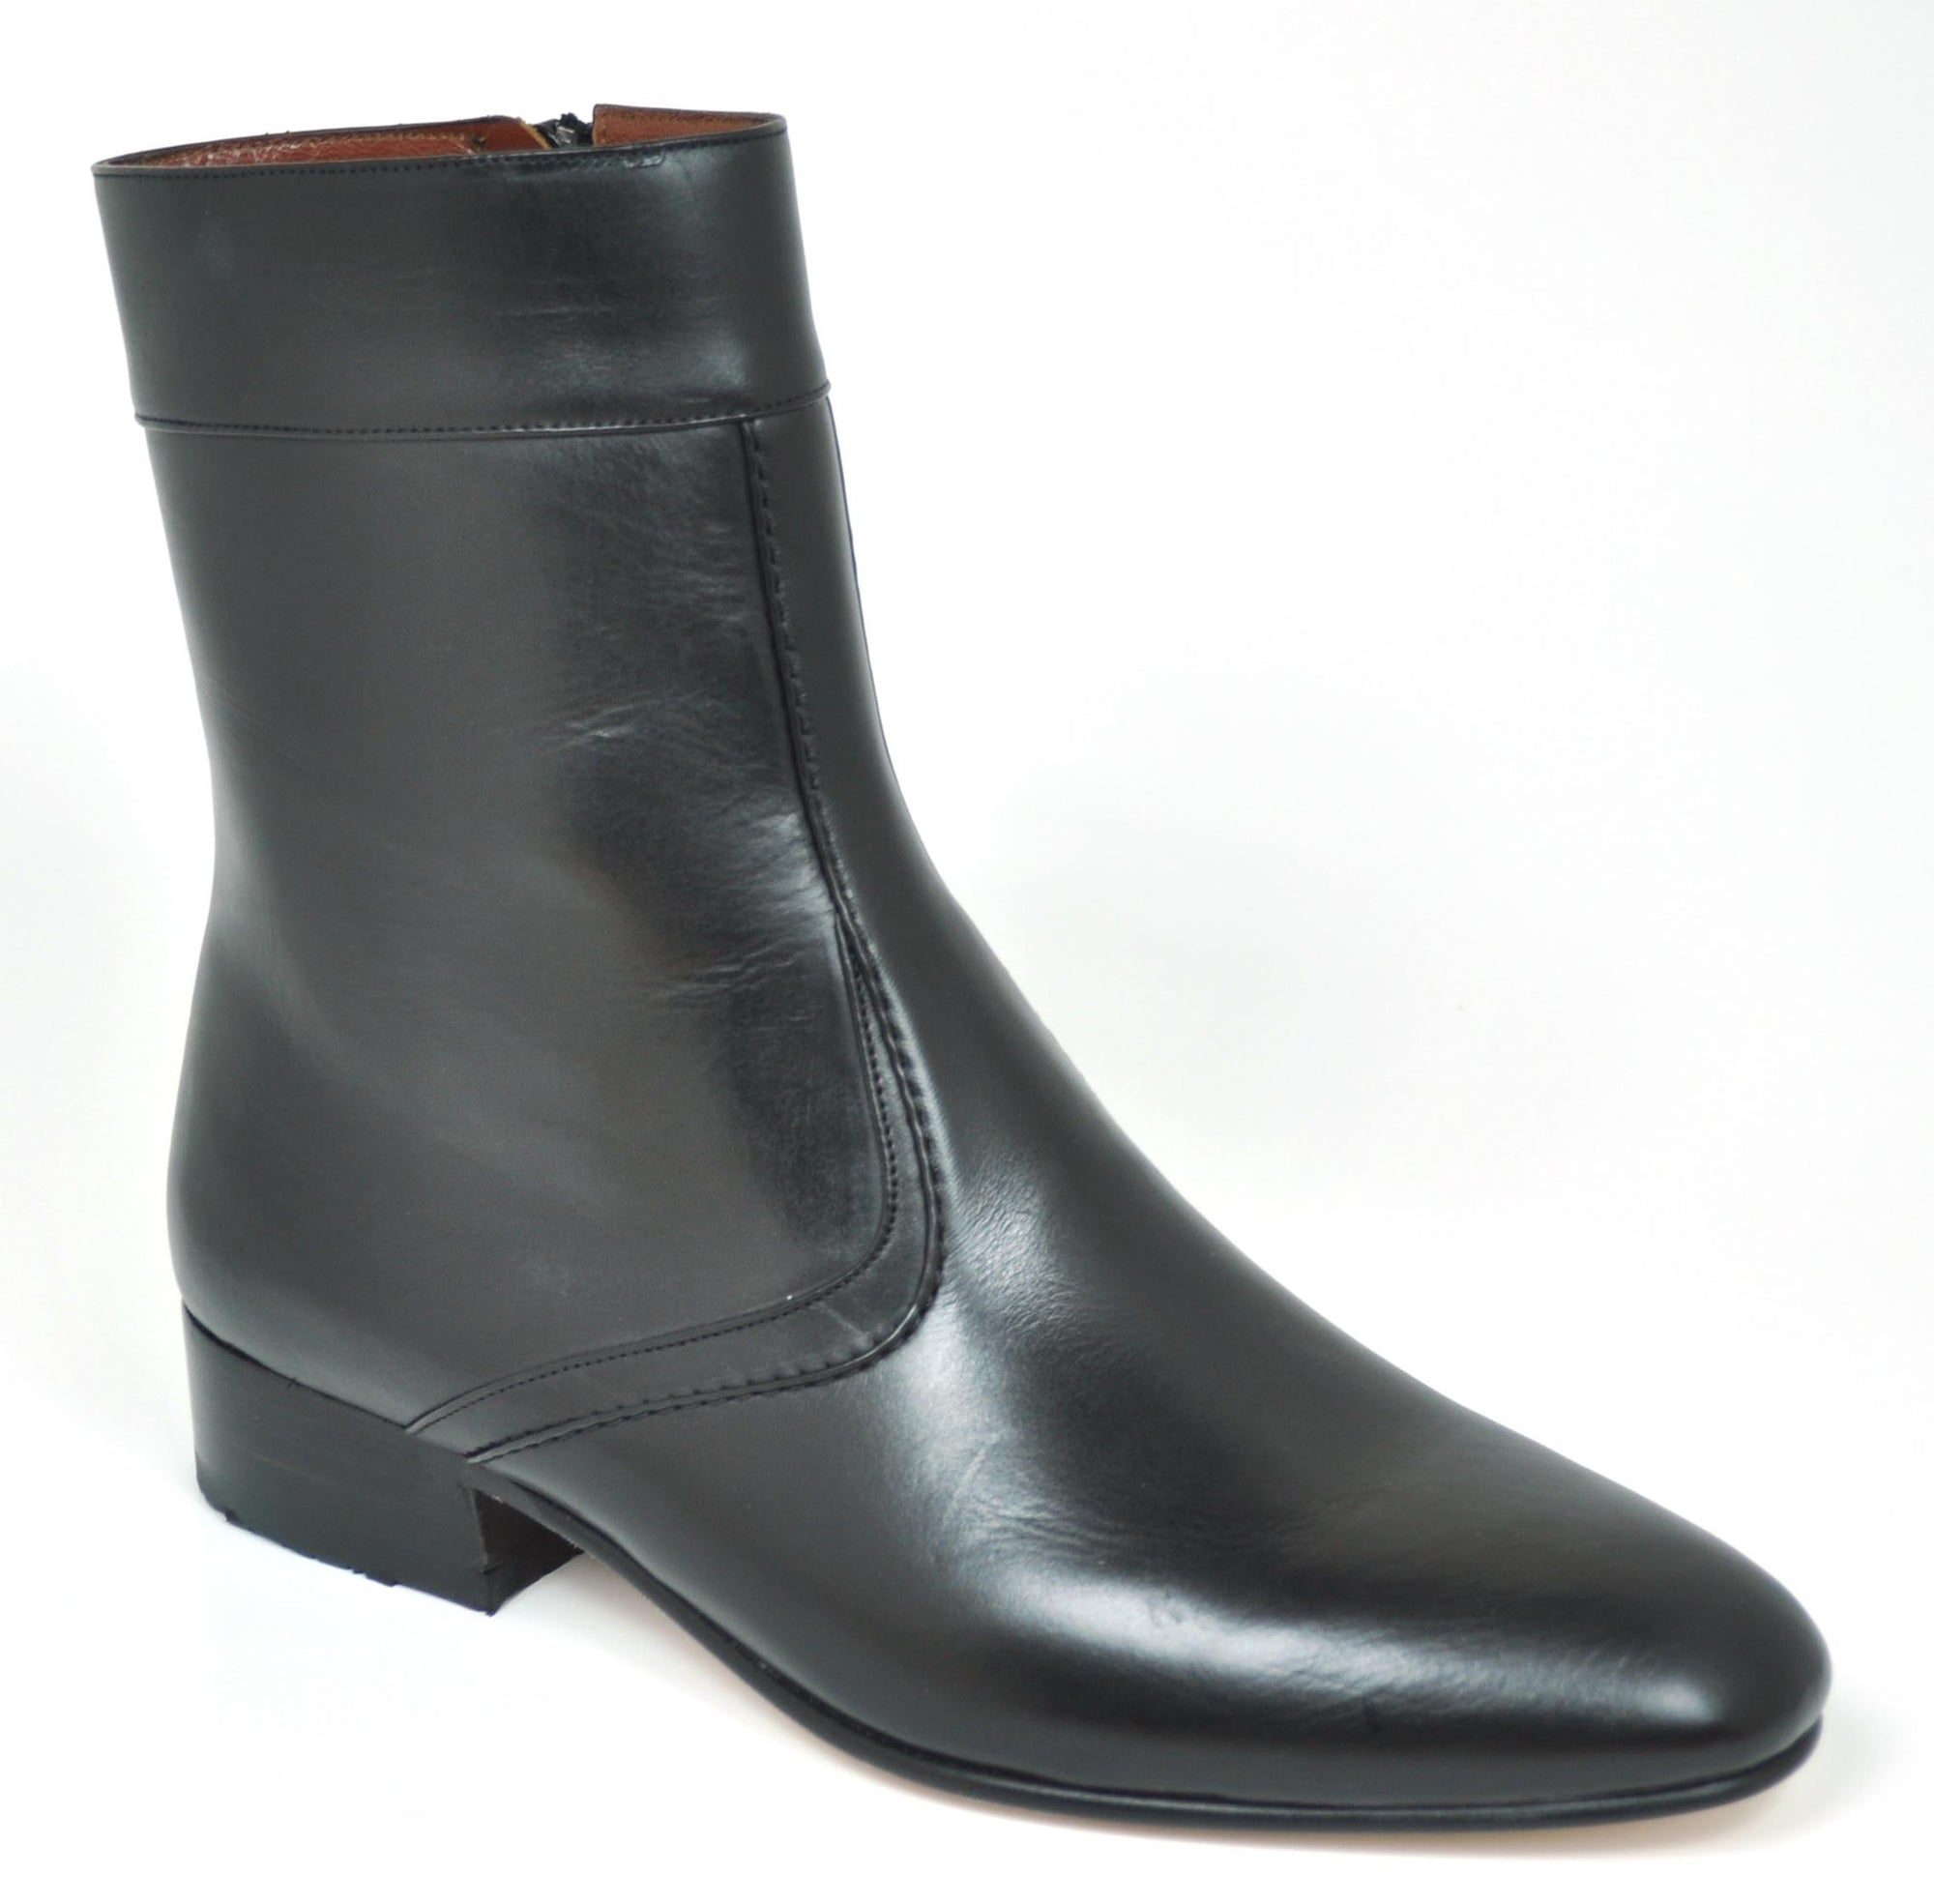 Gavel Men's Calfskin Leather Dress Boot 0901 Black